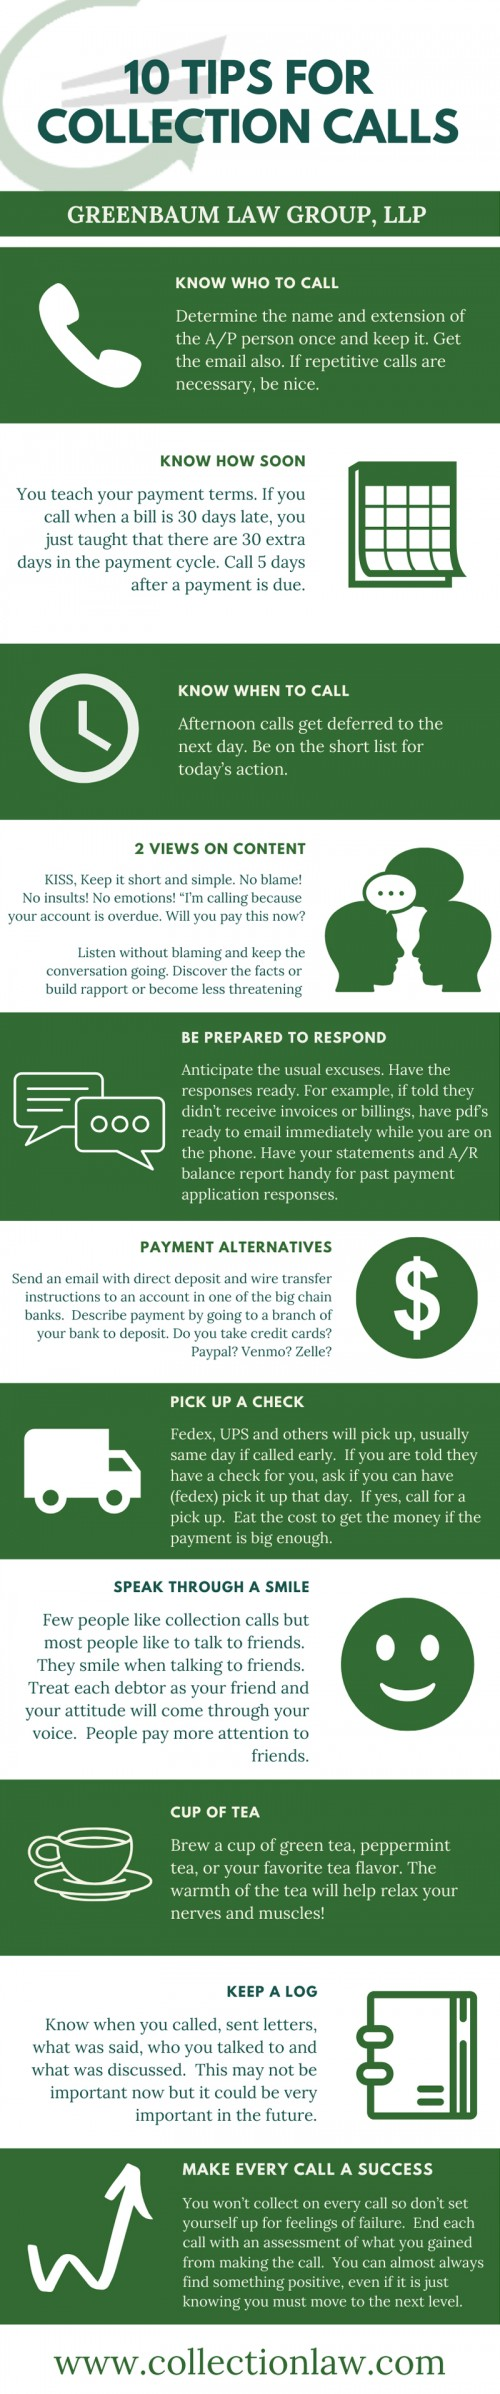 10-Tips-for-Collection-Calls-Infographic88b35c92e3f65bc1.jpg